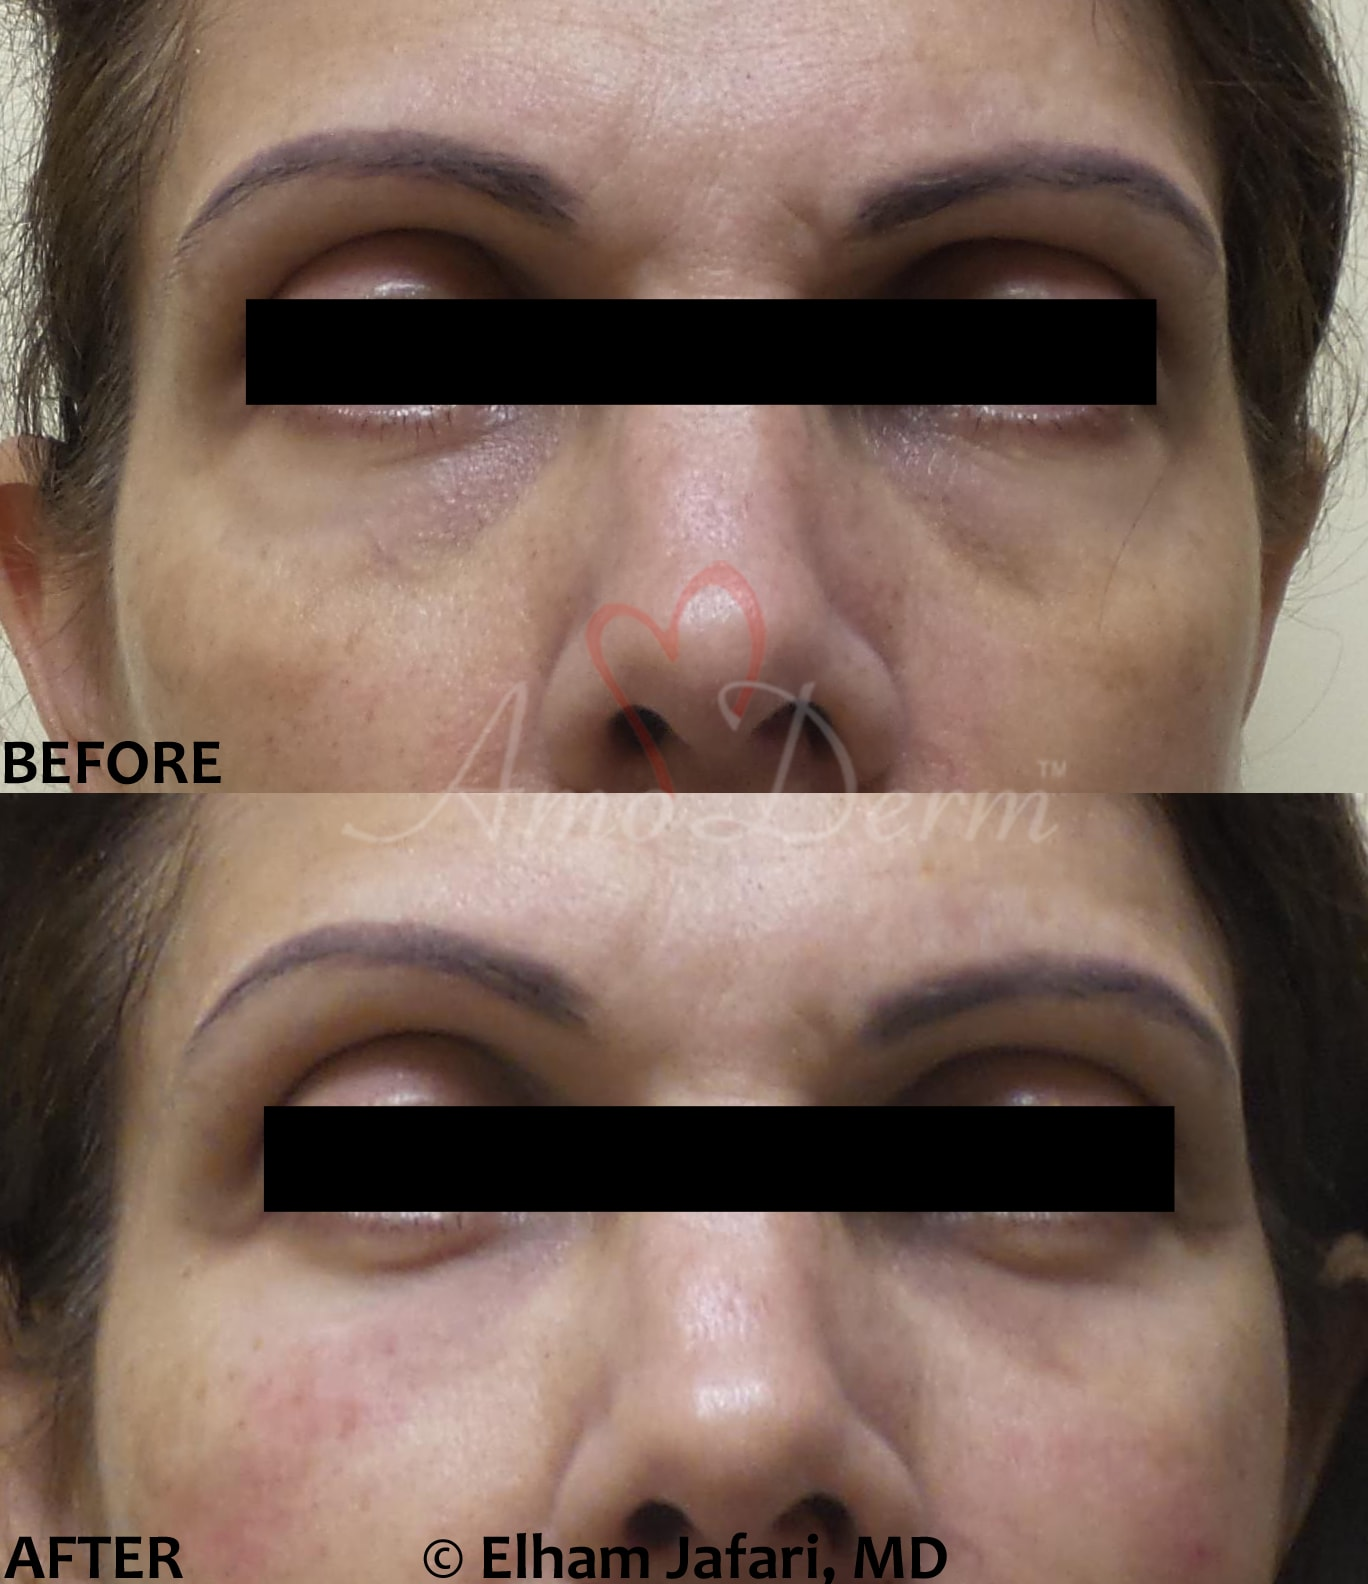 Treatment of dark circles, hollows or bags under eyes